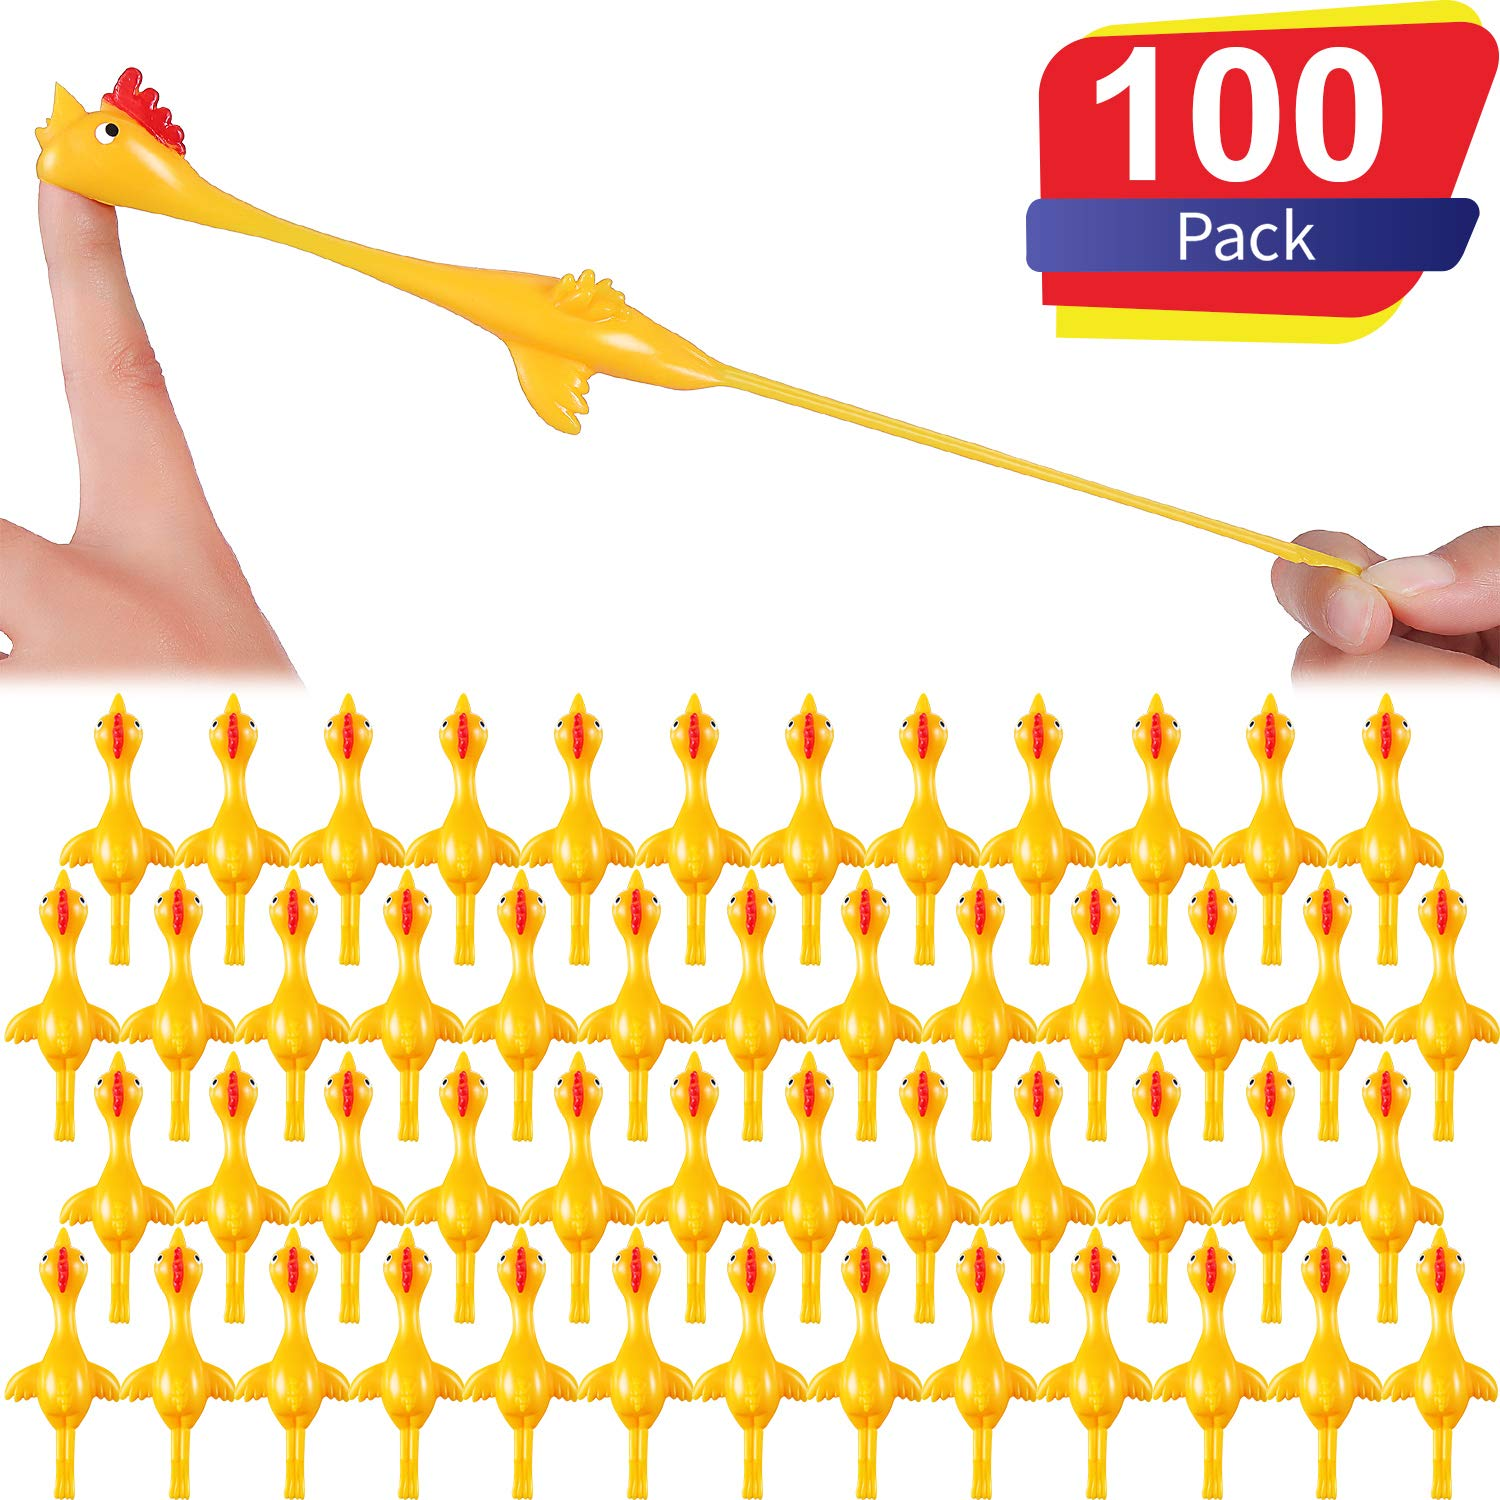 Sumind Slingshot Chicken Flick Chicken Flying Chicken Flingers Stretchy Funny Rubber Chickens Party Activity for Children (100 Pack Yellow)